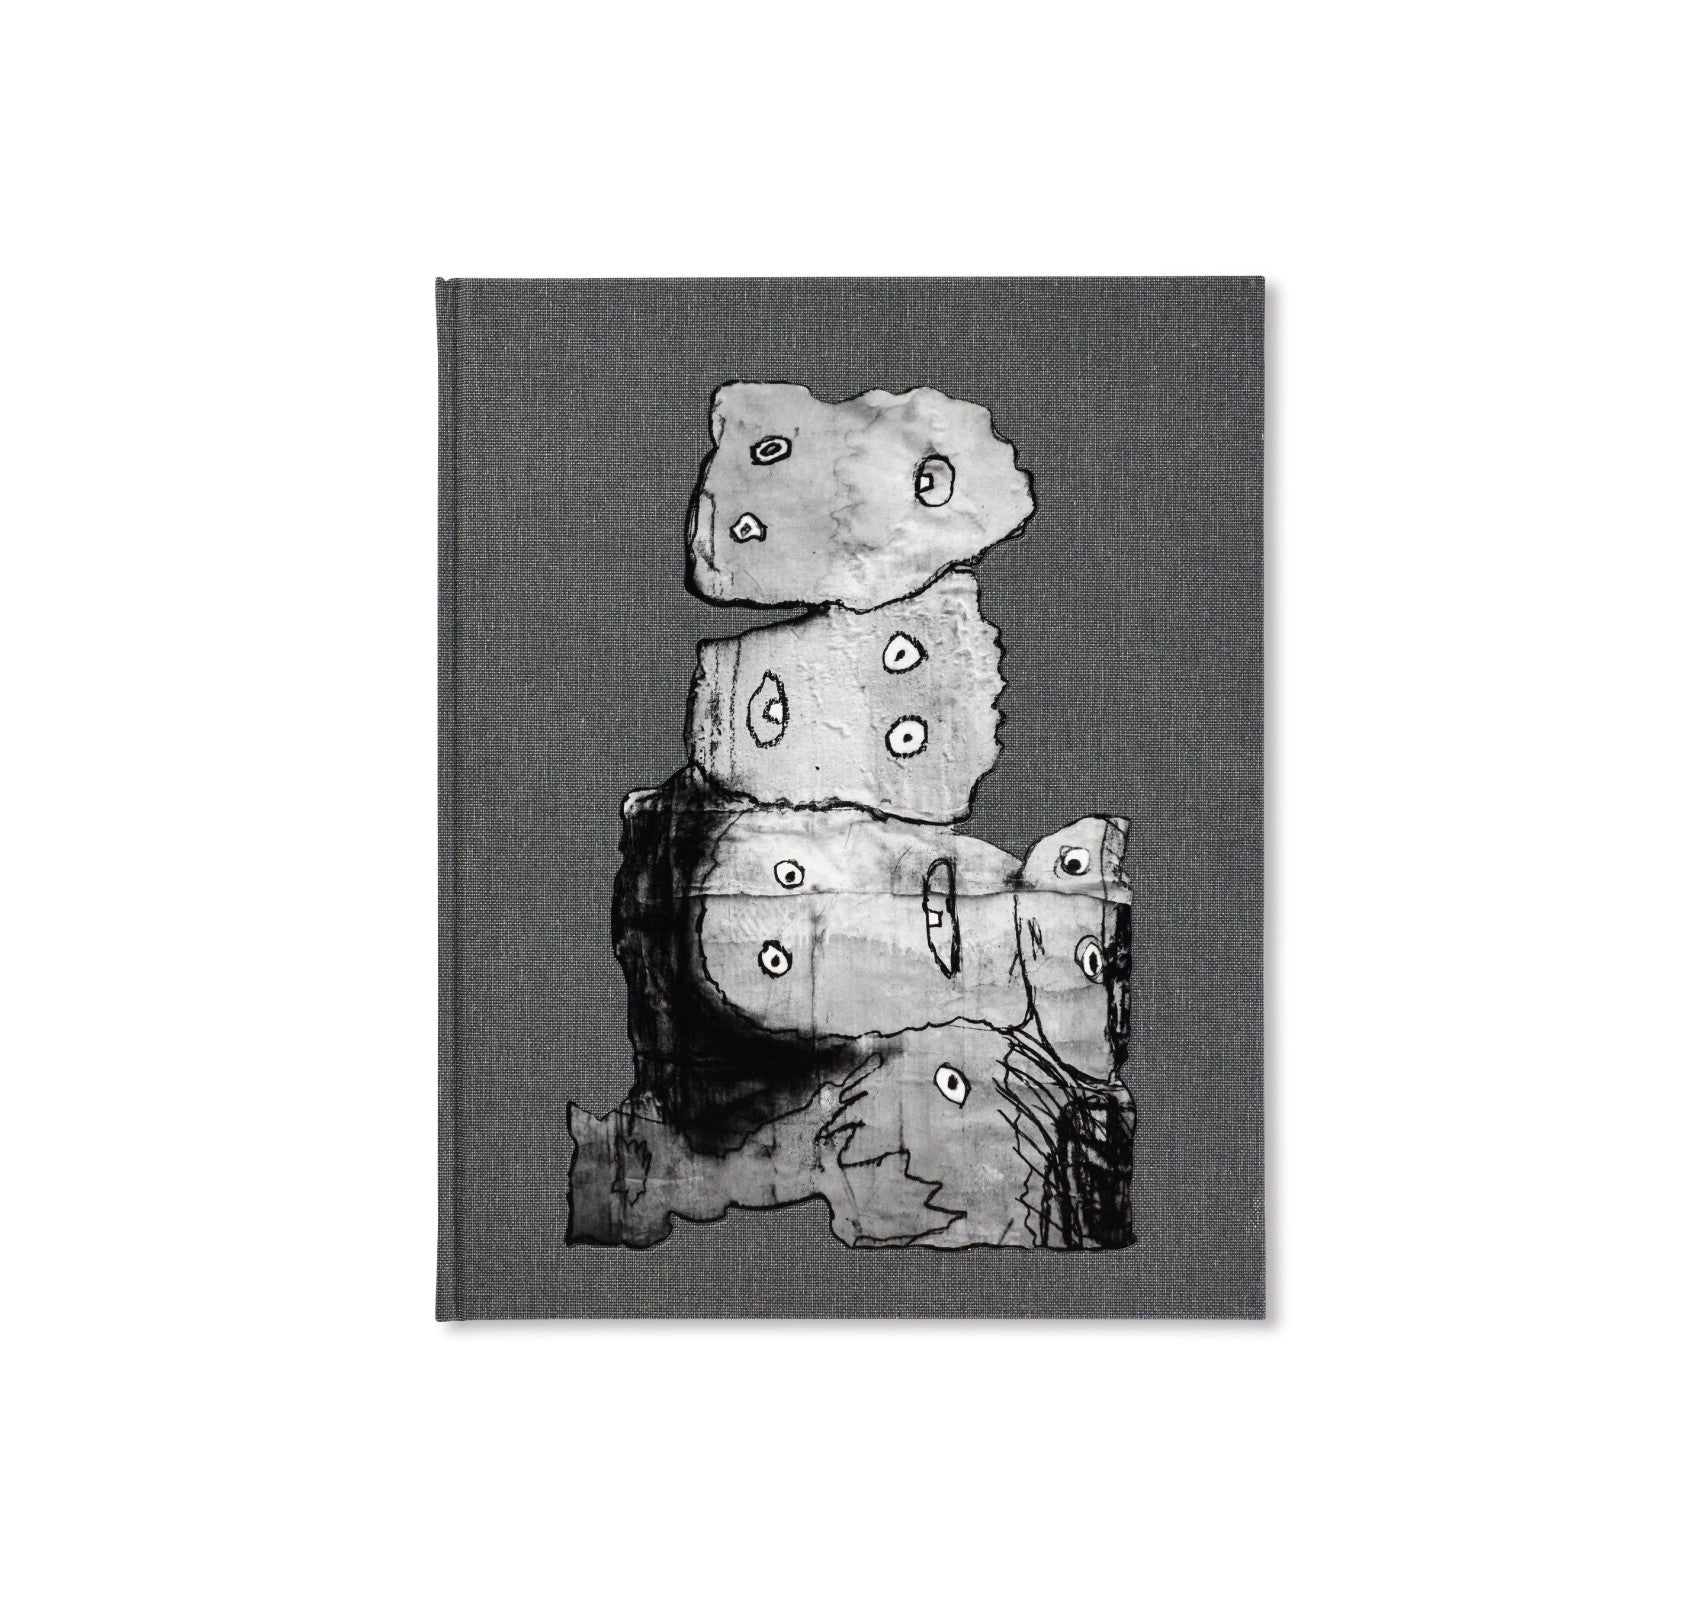 THE HOUSE PROJECT by Roger Ballen & Didi Bozzini [SIGNED]